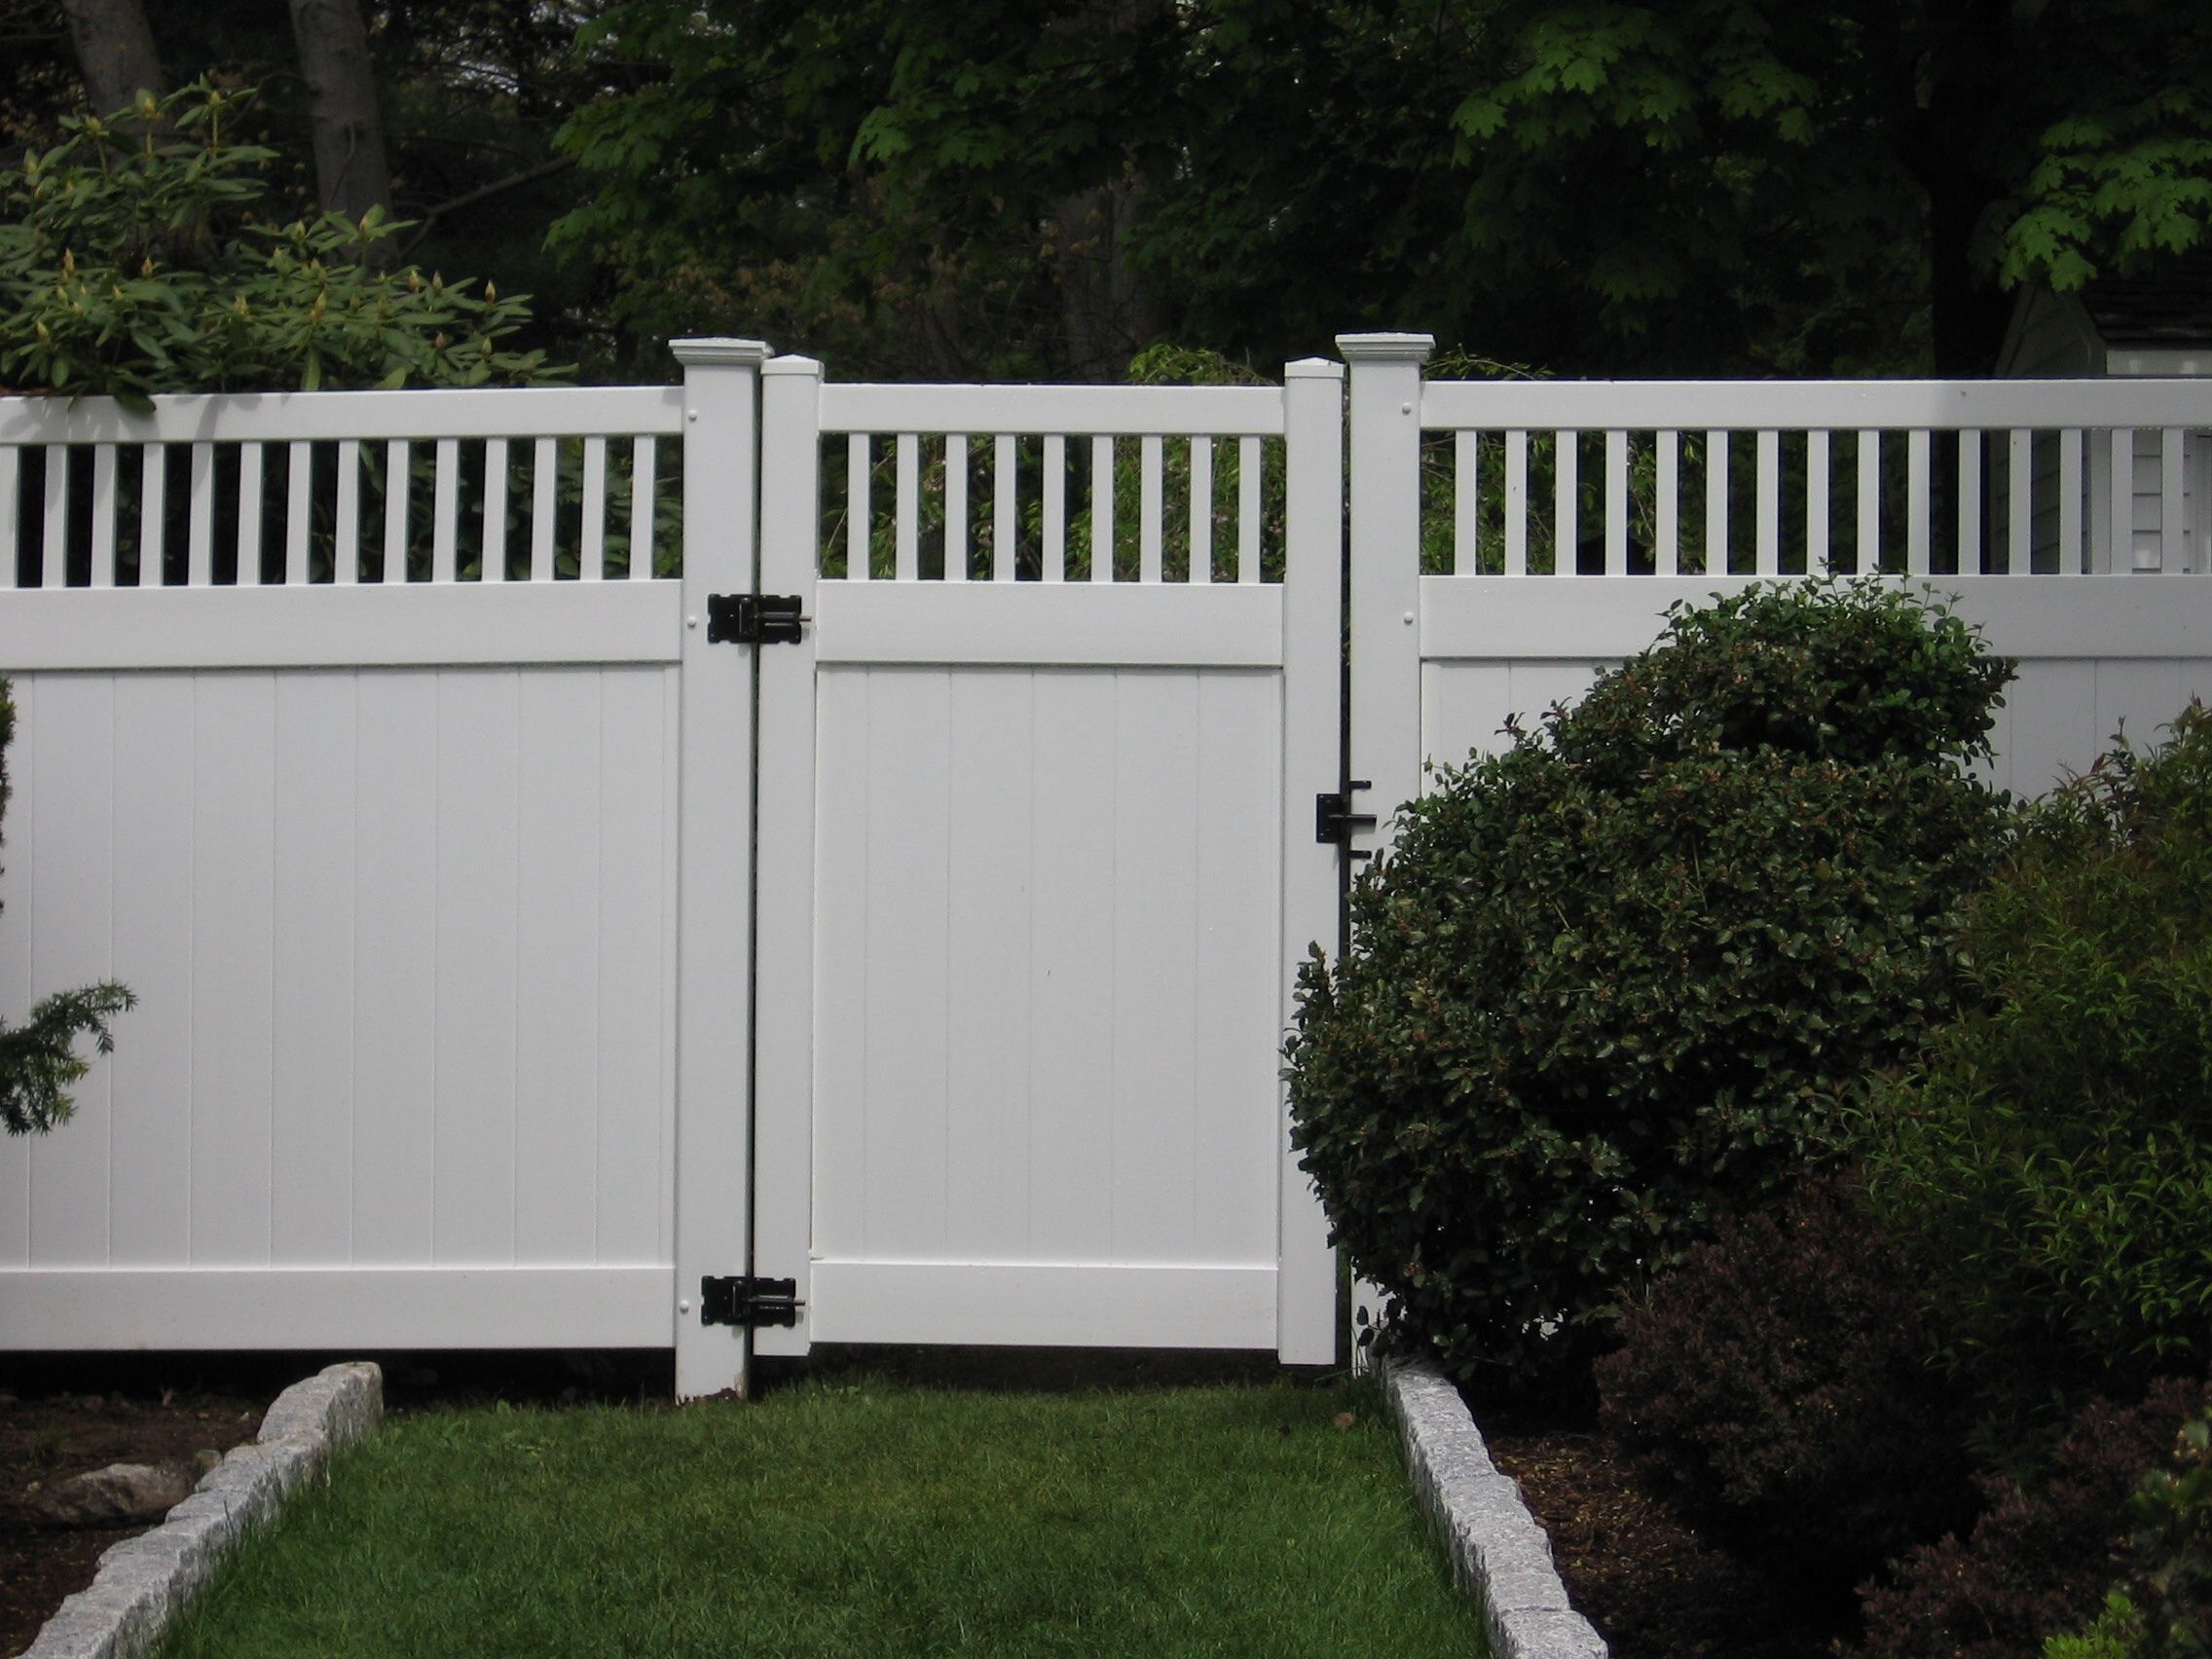 Vinyl Fences With A Gate Vinyl Fence With Essex Topper Fences Boston Ma This Fence Installation Vinyl Fence Fence Installation Cost Vinyl Fence Panels